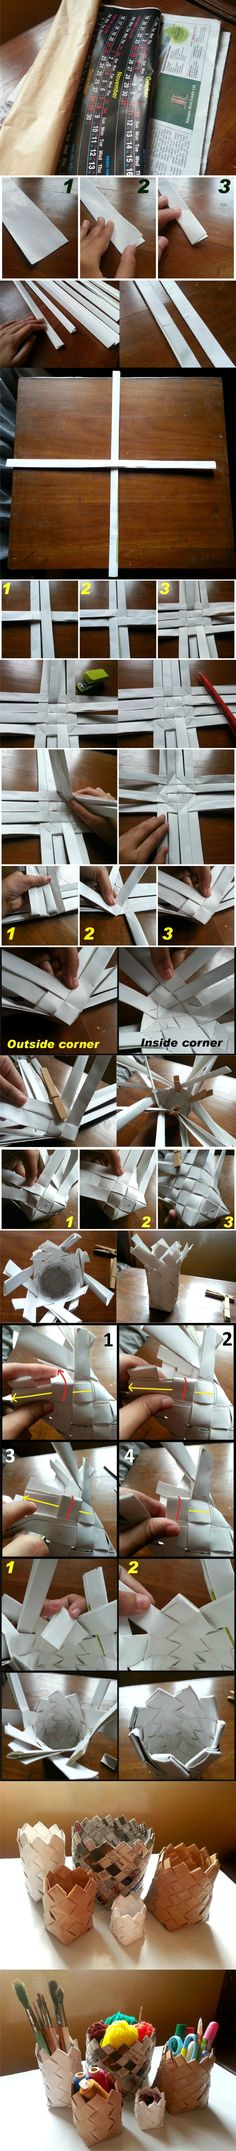 simple and fast. Diy Arts And Crafts, Crafts To Do, Easy Crafts, Diy Paper, Paper Crafts, Paper Weaving, Paper Basket, General Crafts, Crafty Craft